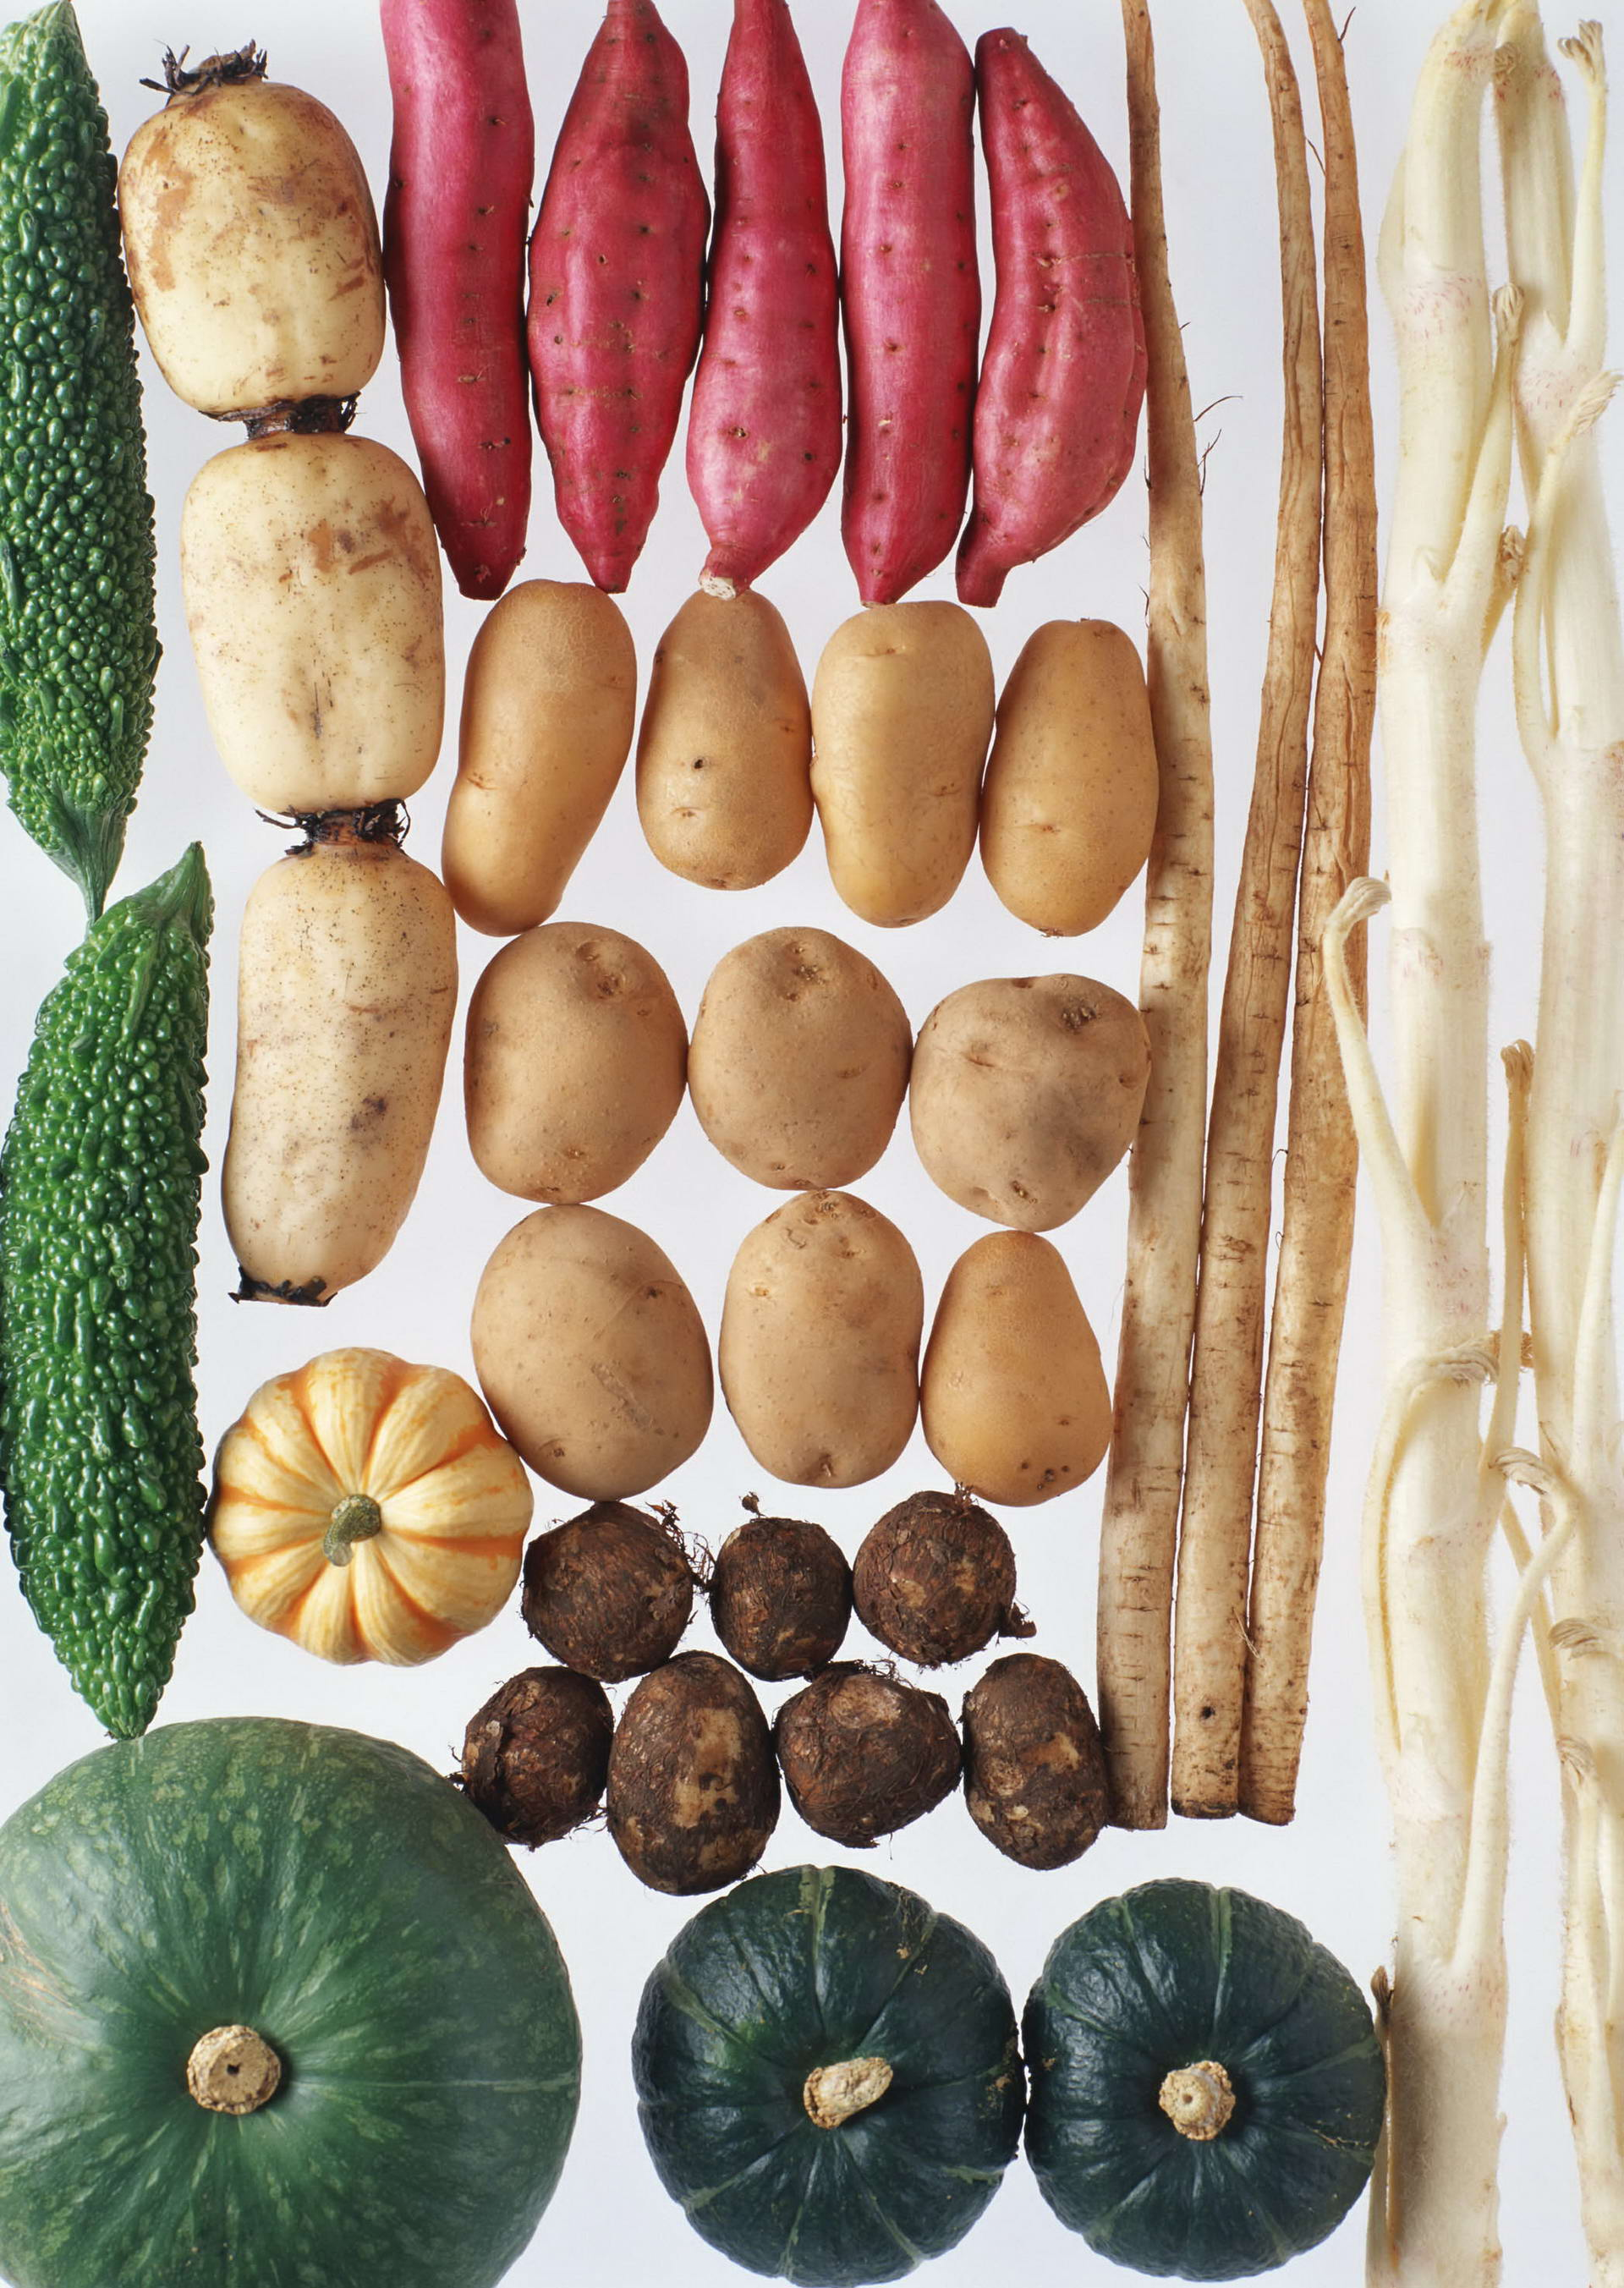 Vegetables are parts of plants that are consumed by humans as food as part of a meal The original meaning is still commonly used and is applied to plants